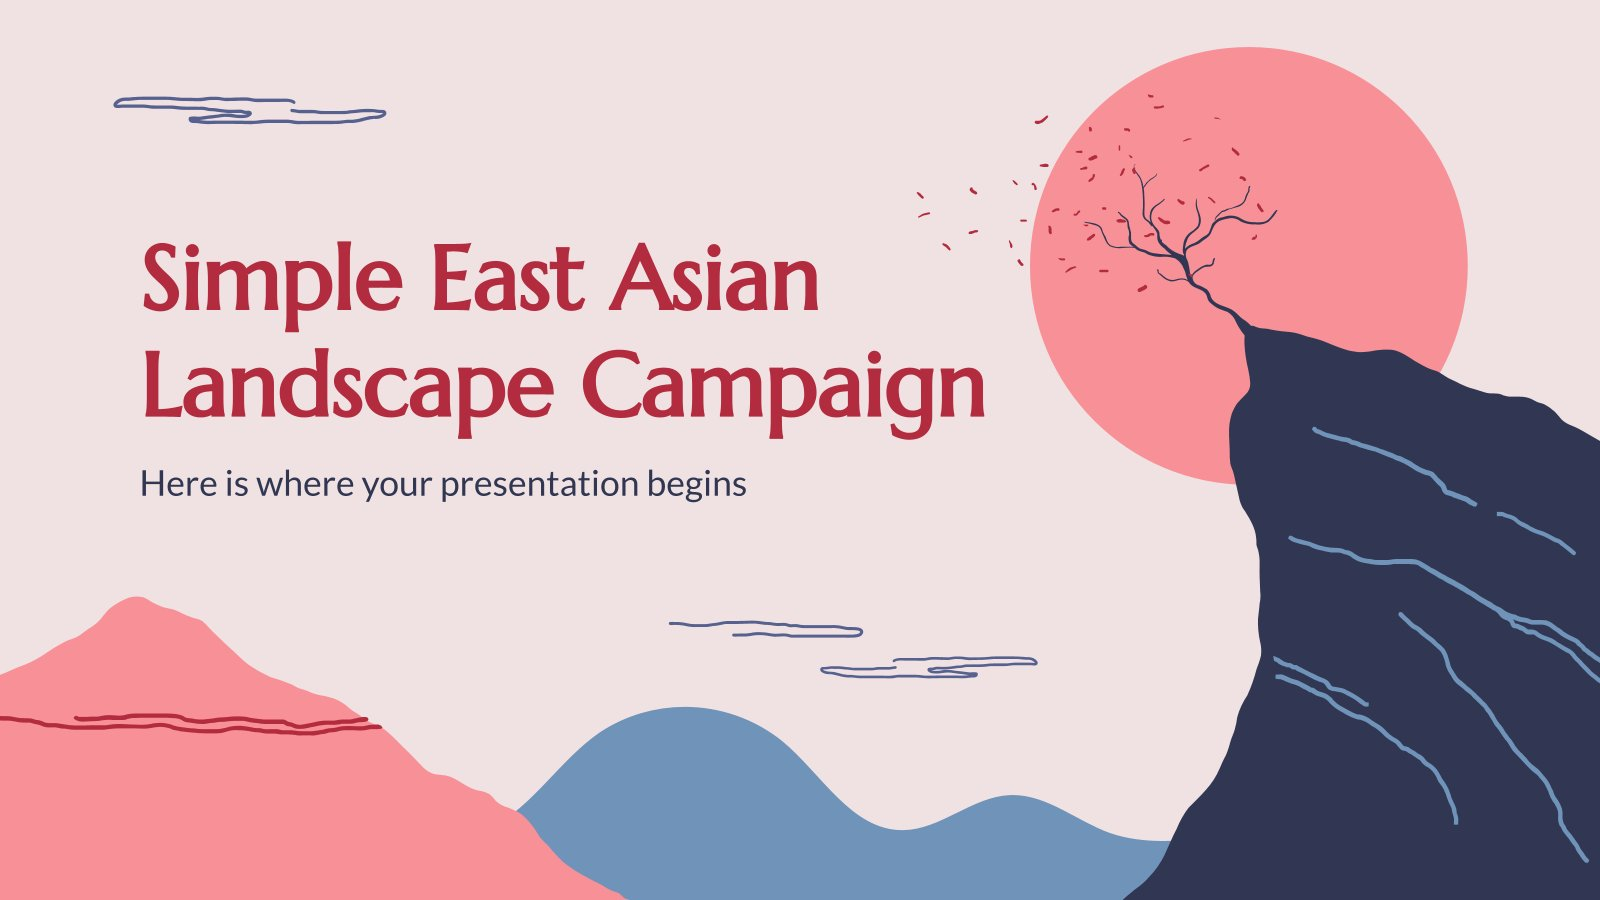 Simple East Asian Landscape Campaign presentation template